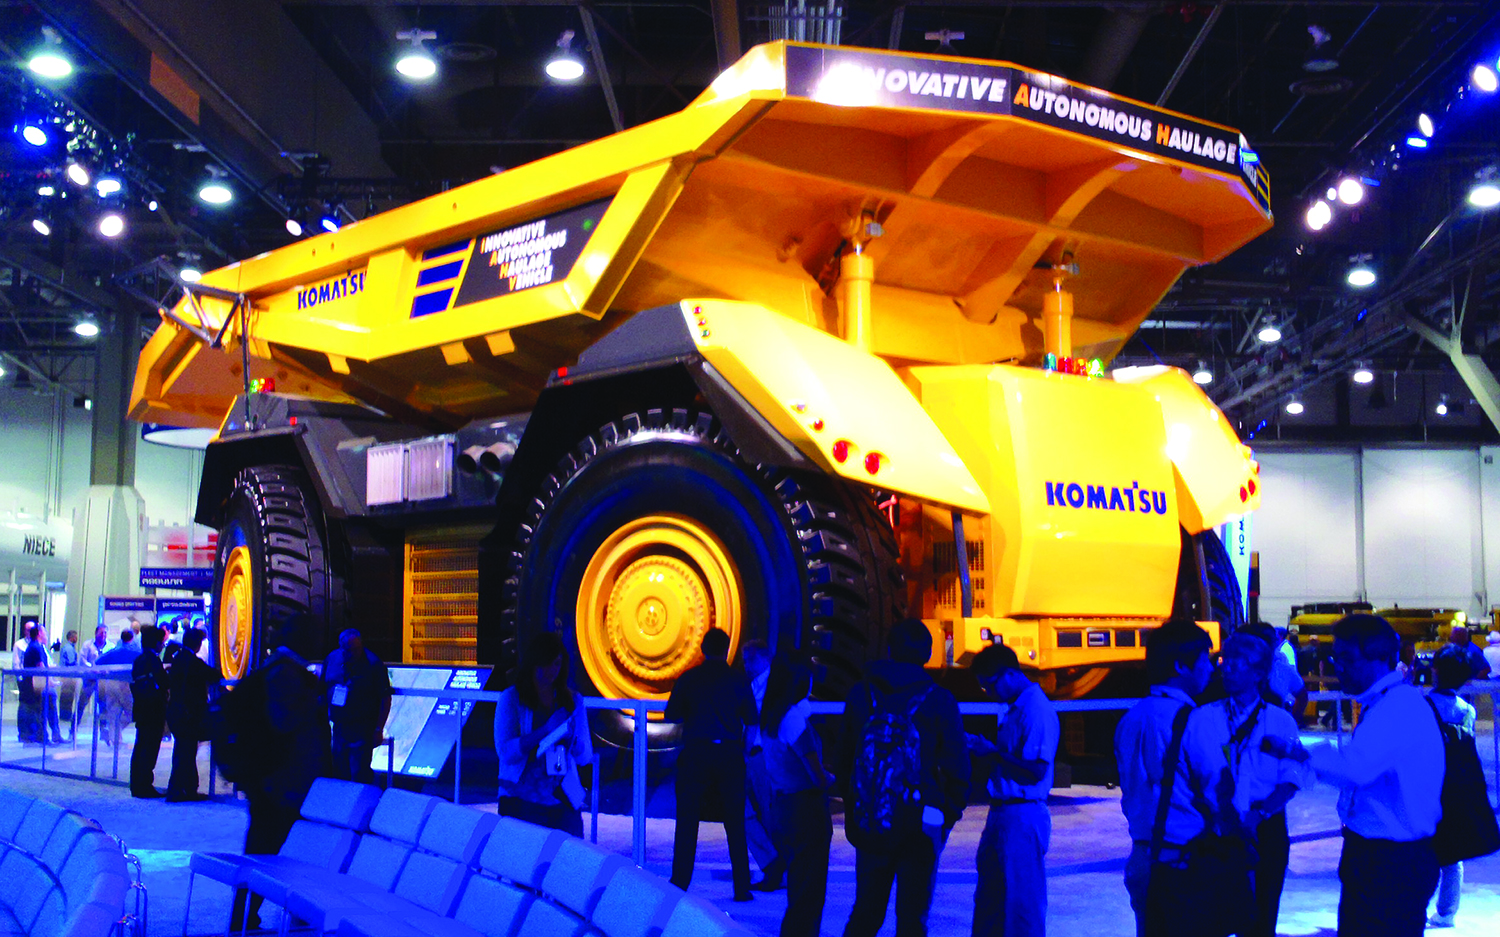 Komatsu's IAHV hauler is designed to travel equally efficient in forward or reverse direction.